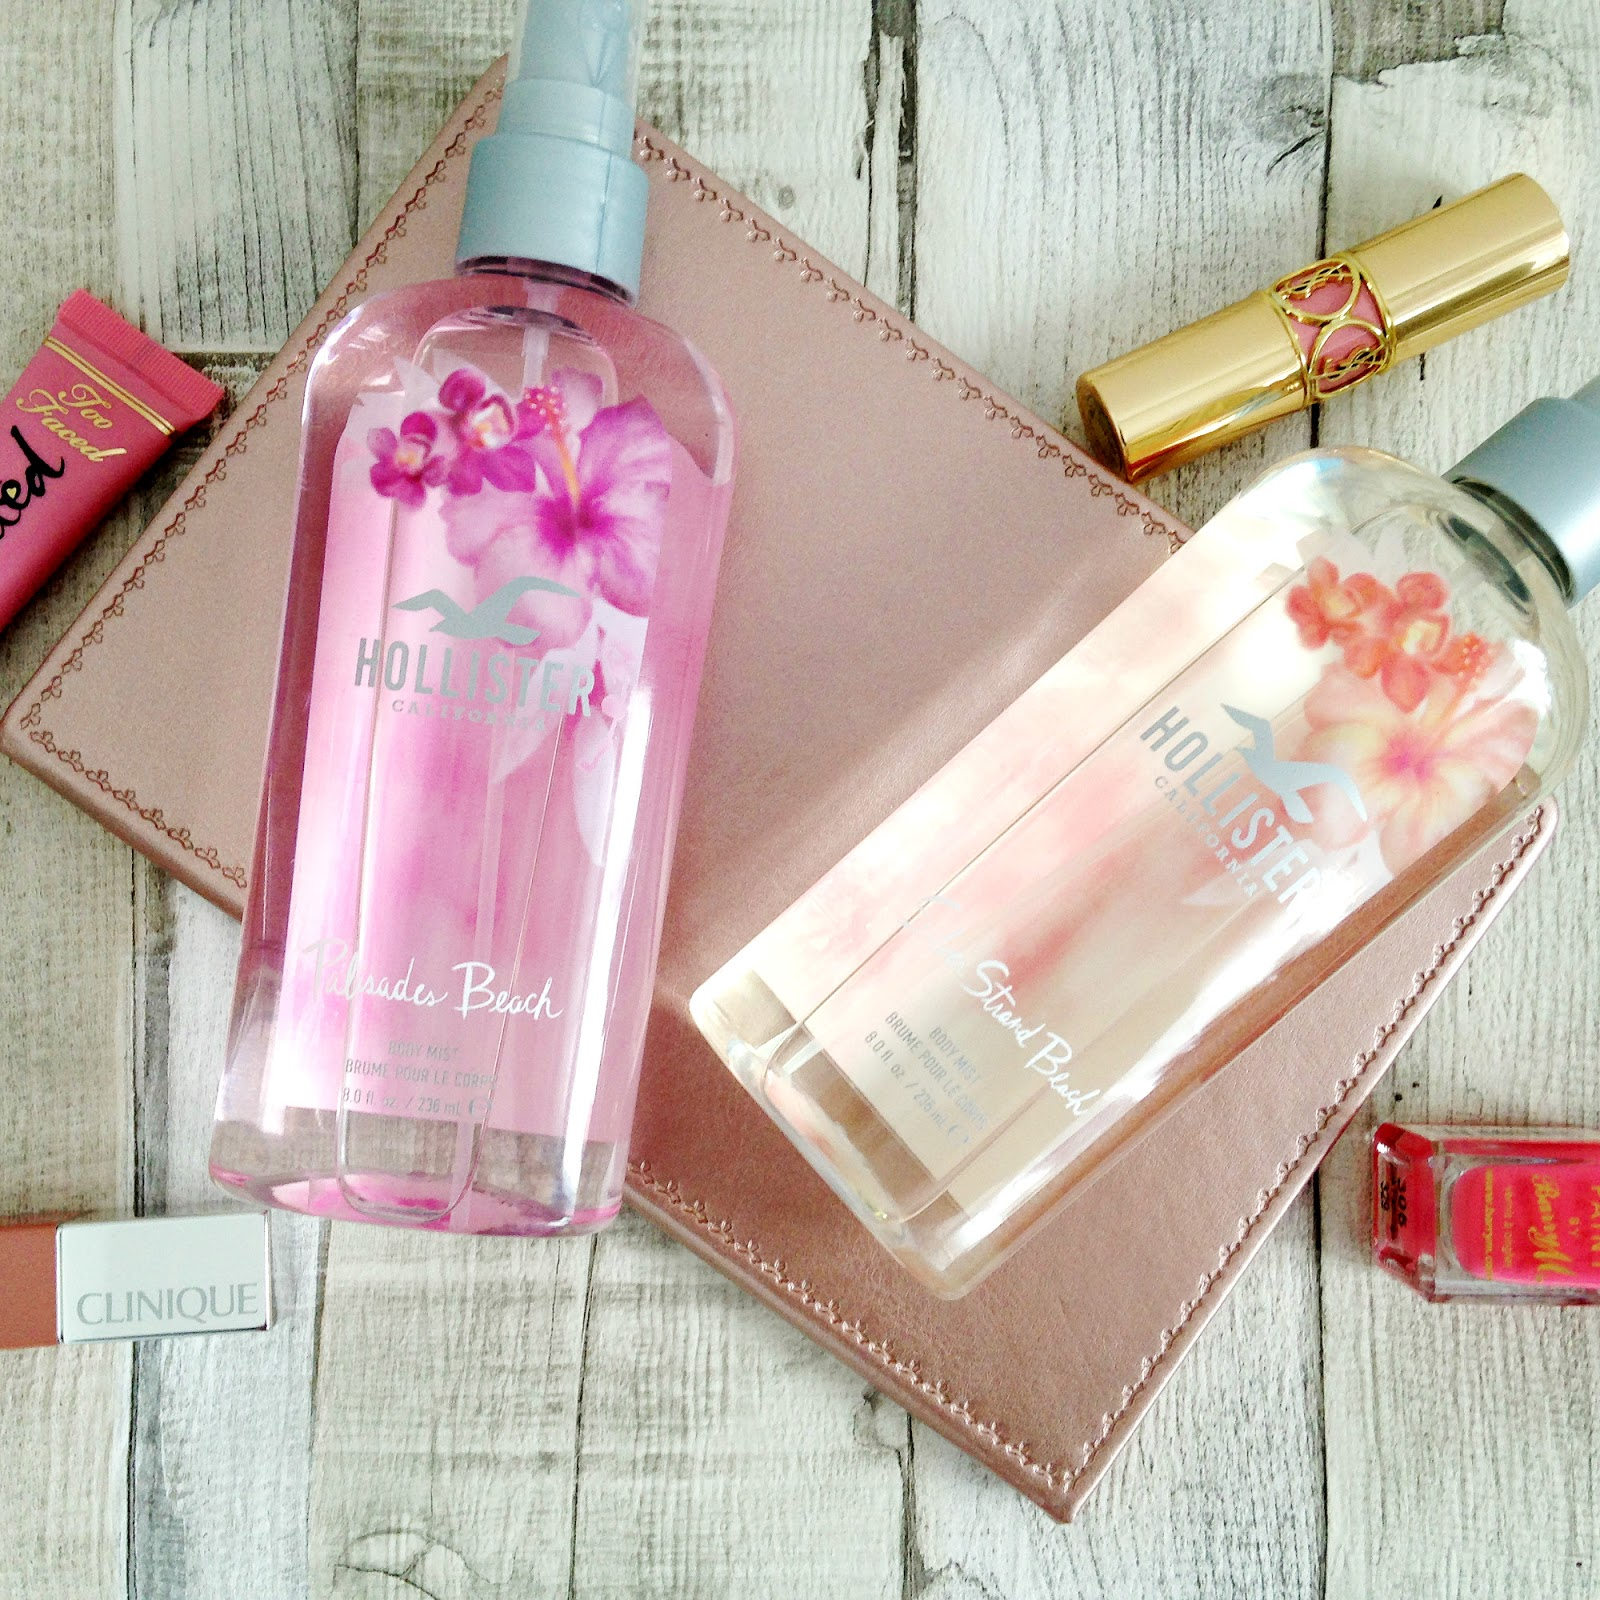 Hollister Body Mists